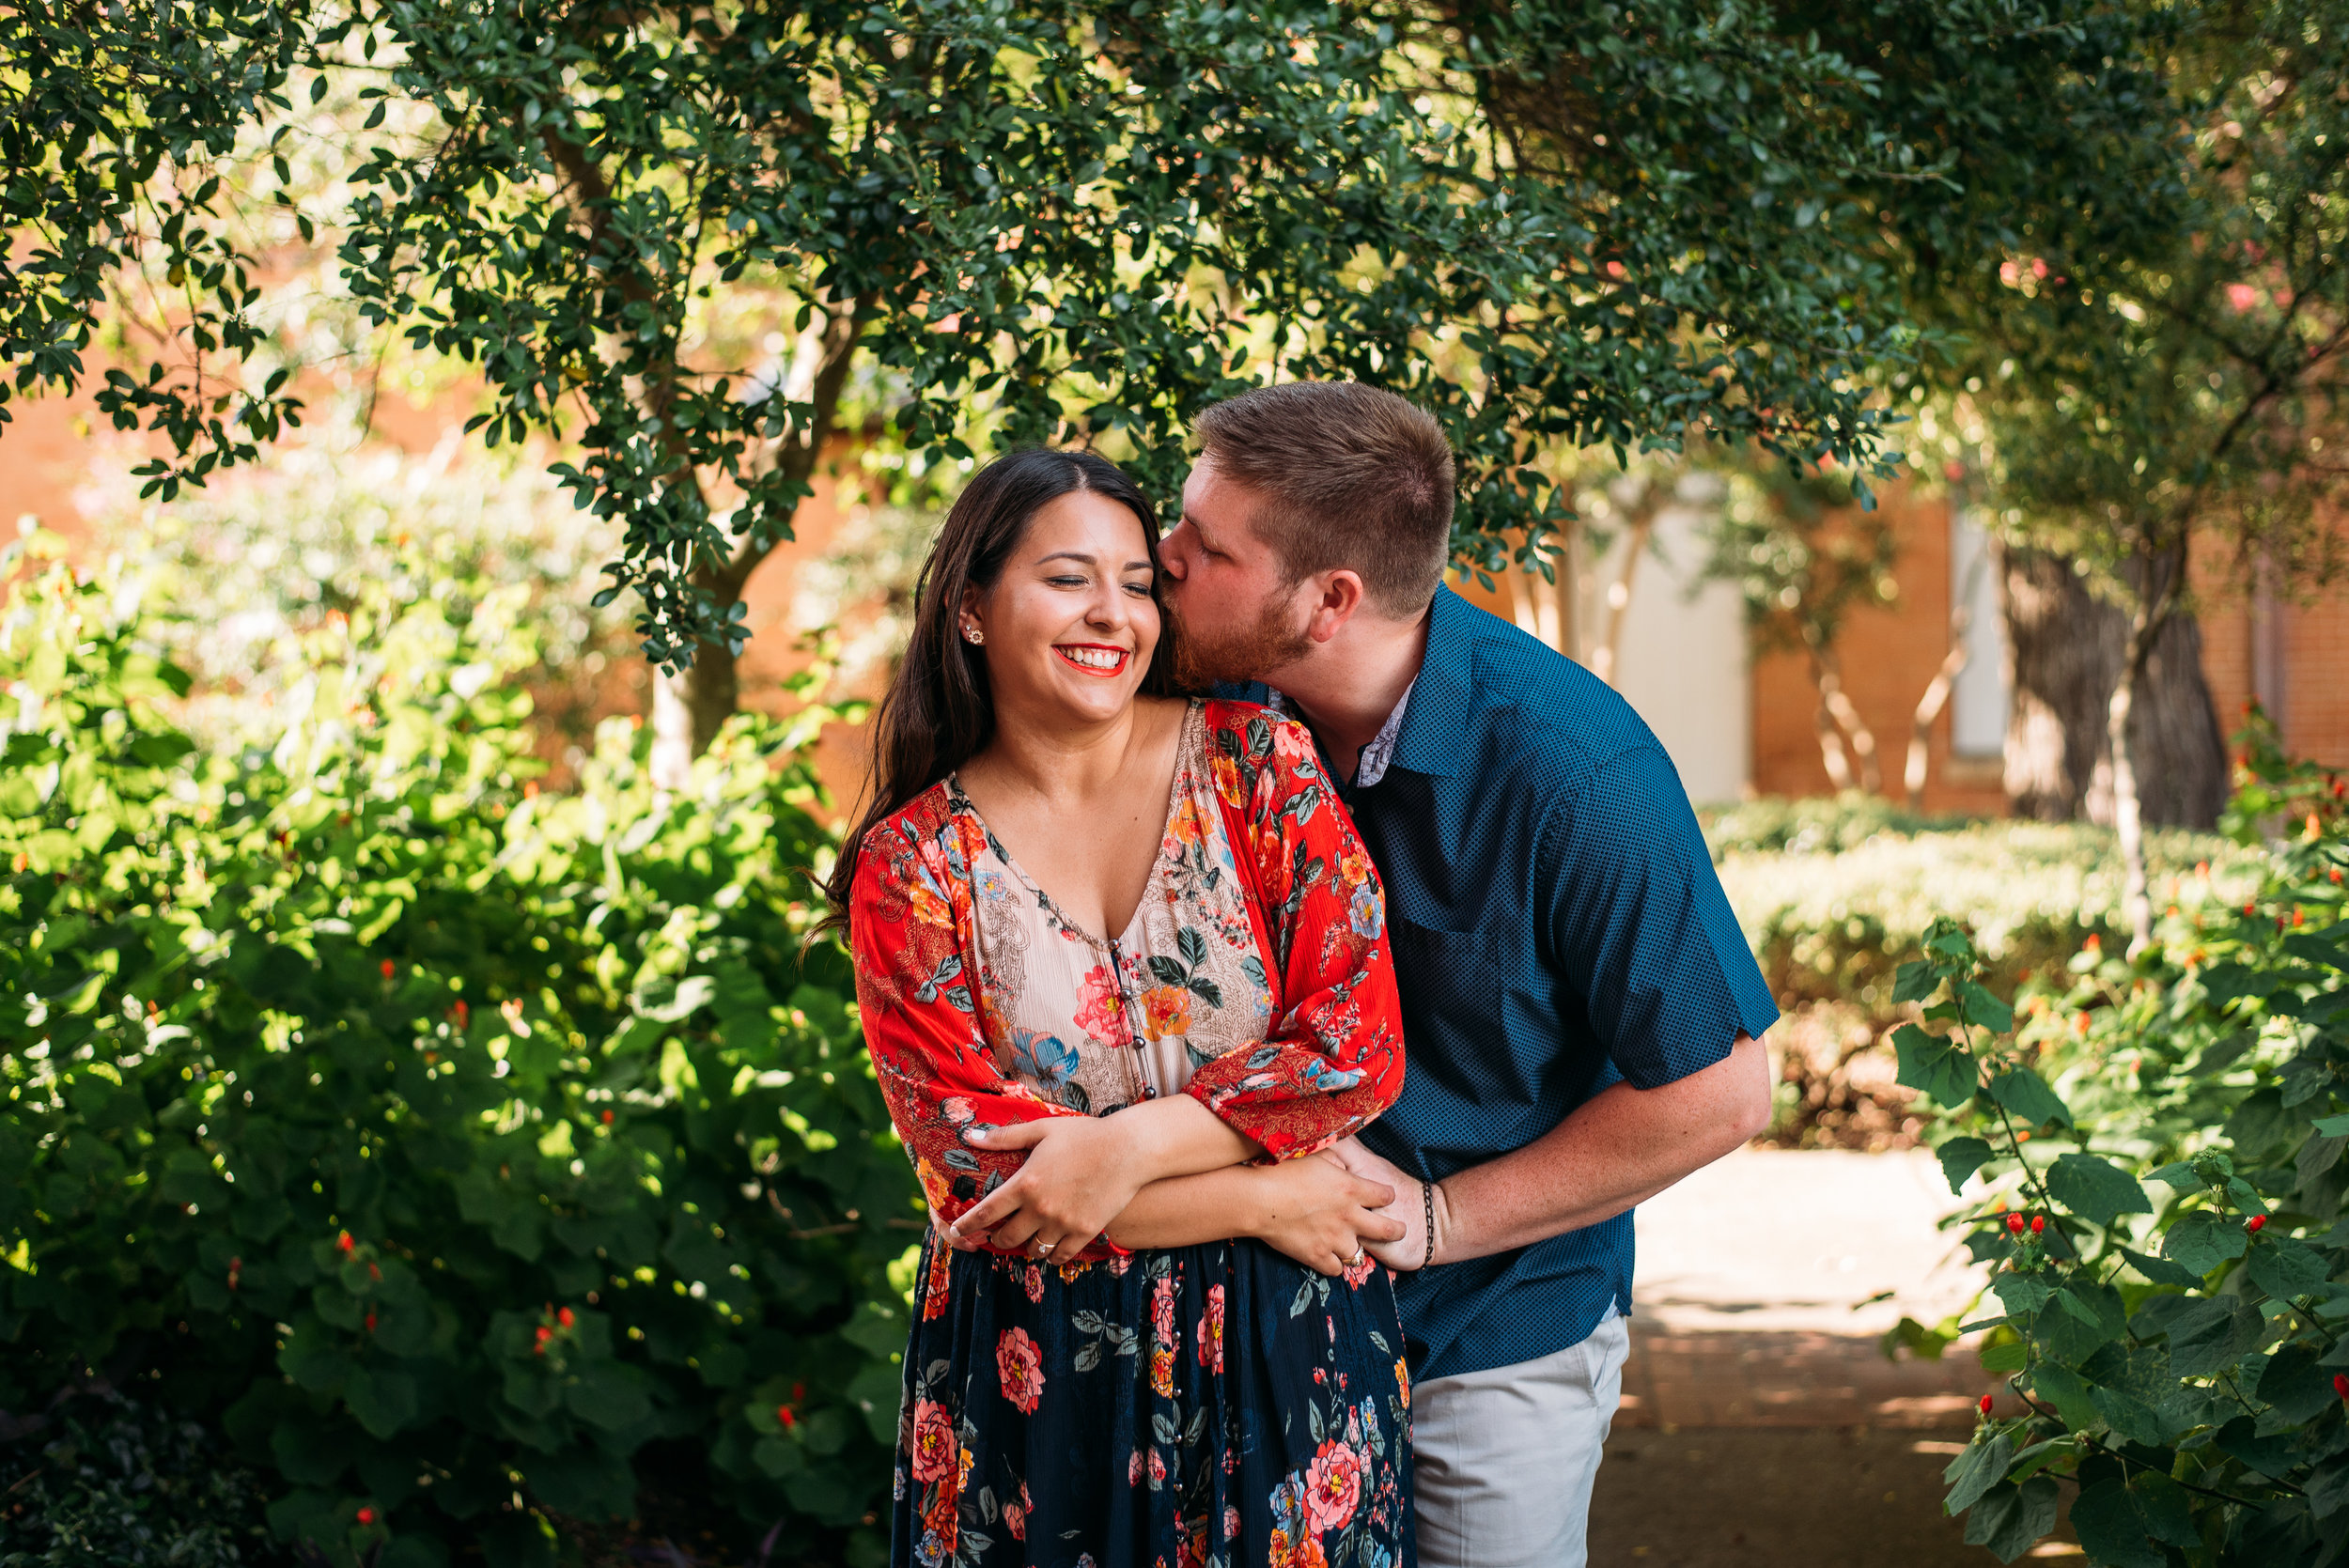 Downtown-Bryan-Engagement-George-Bush-Library-Texas-A&M-University-College-Station-Wedding-Photographer-San-Angel-Photo-Mark-Abigail-Jake-03.jpg